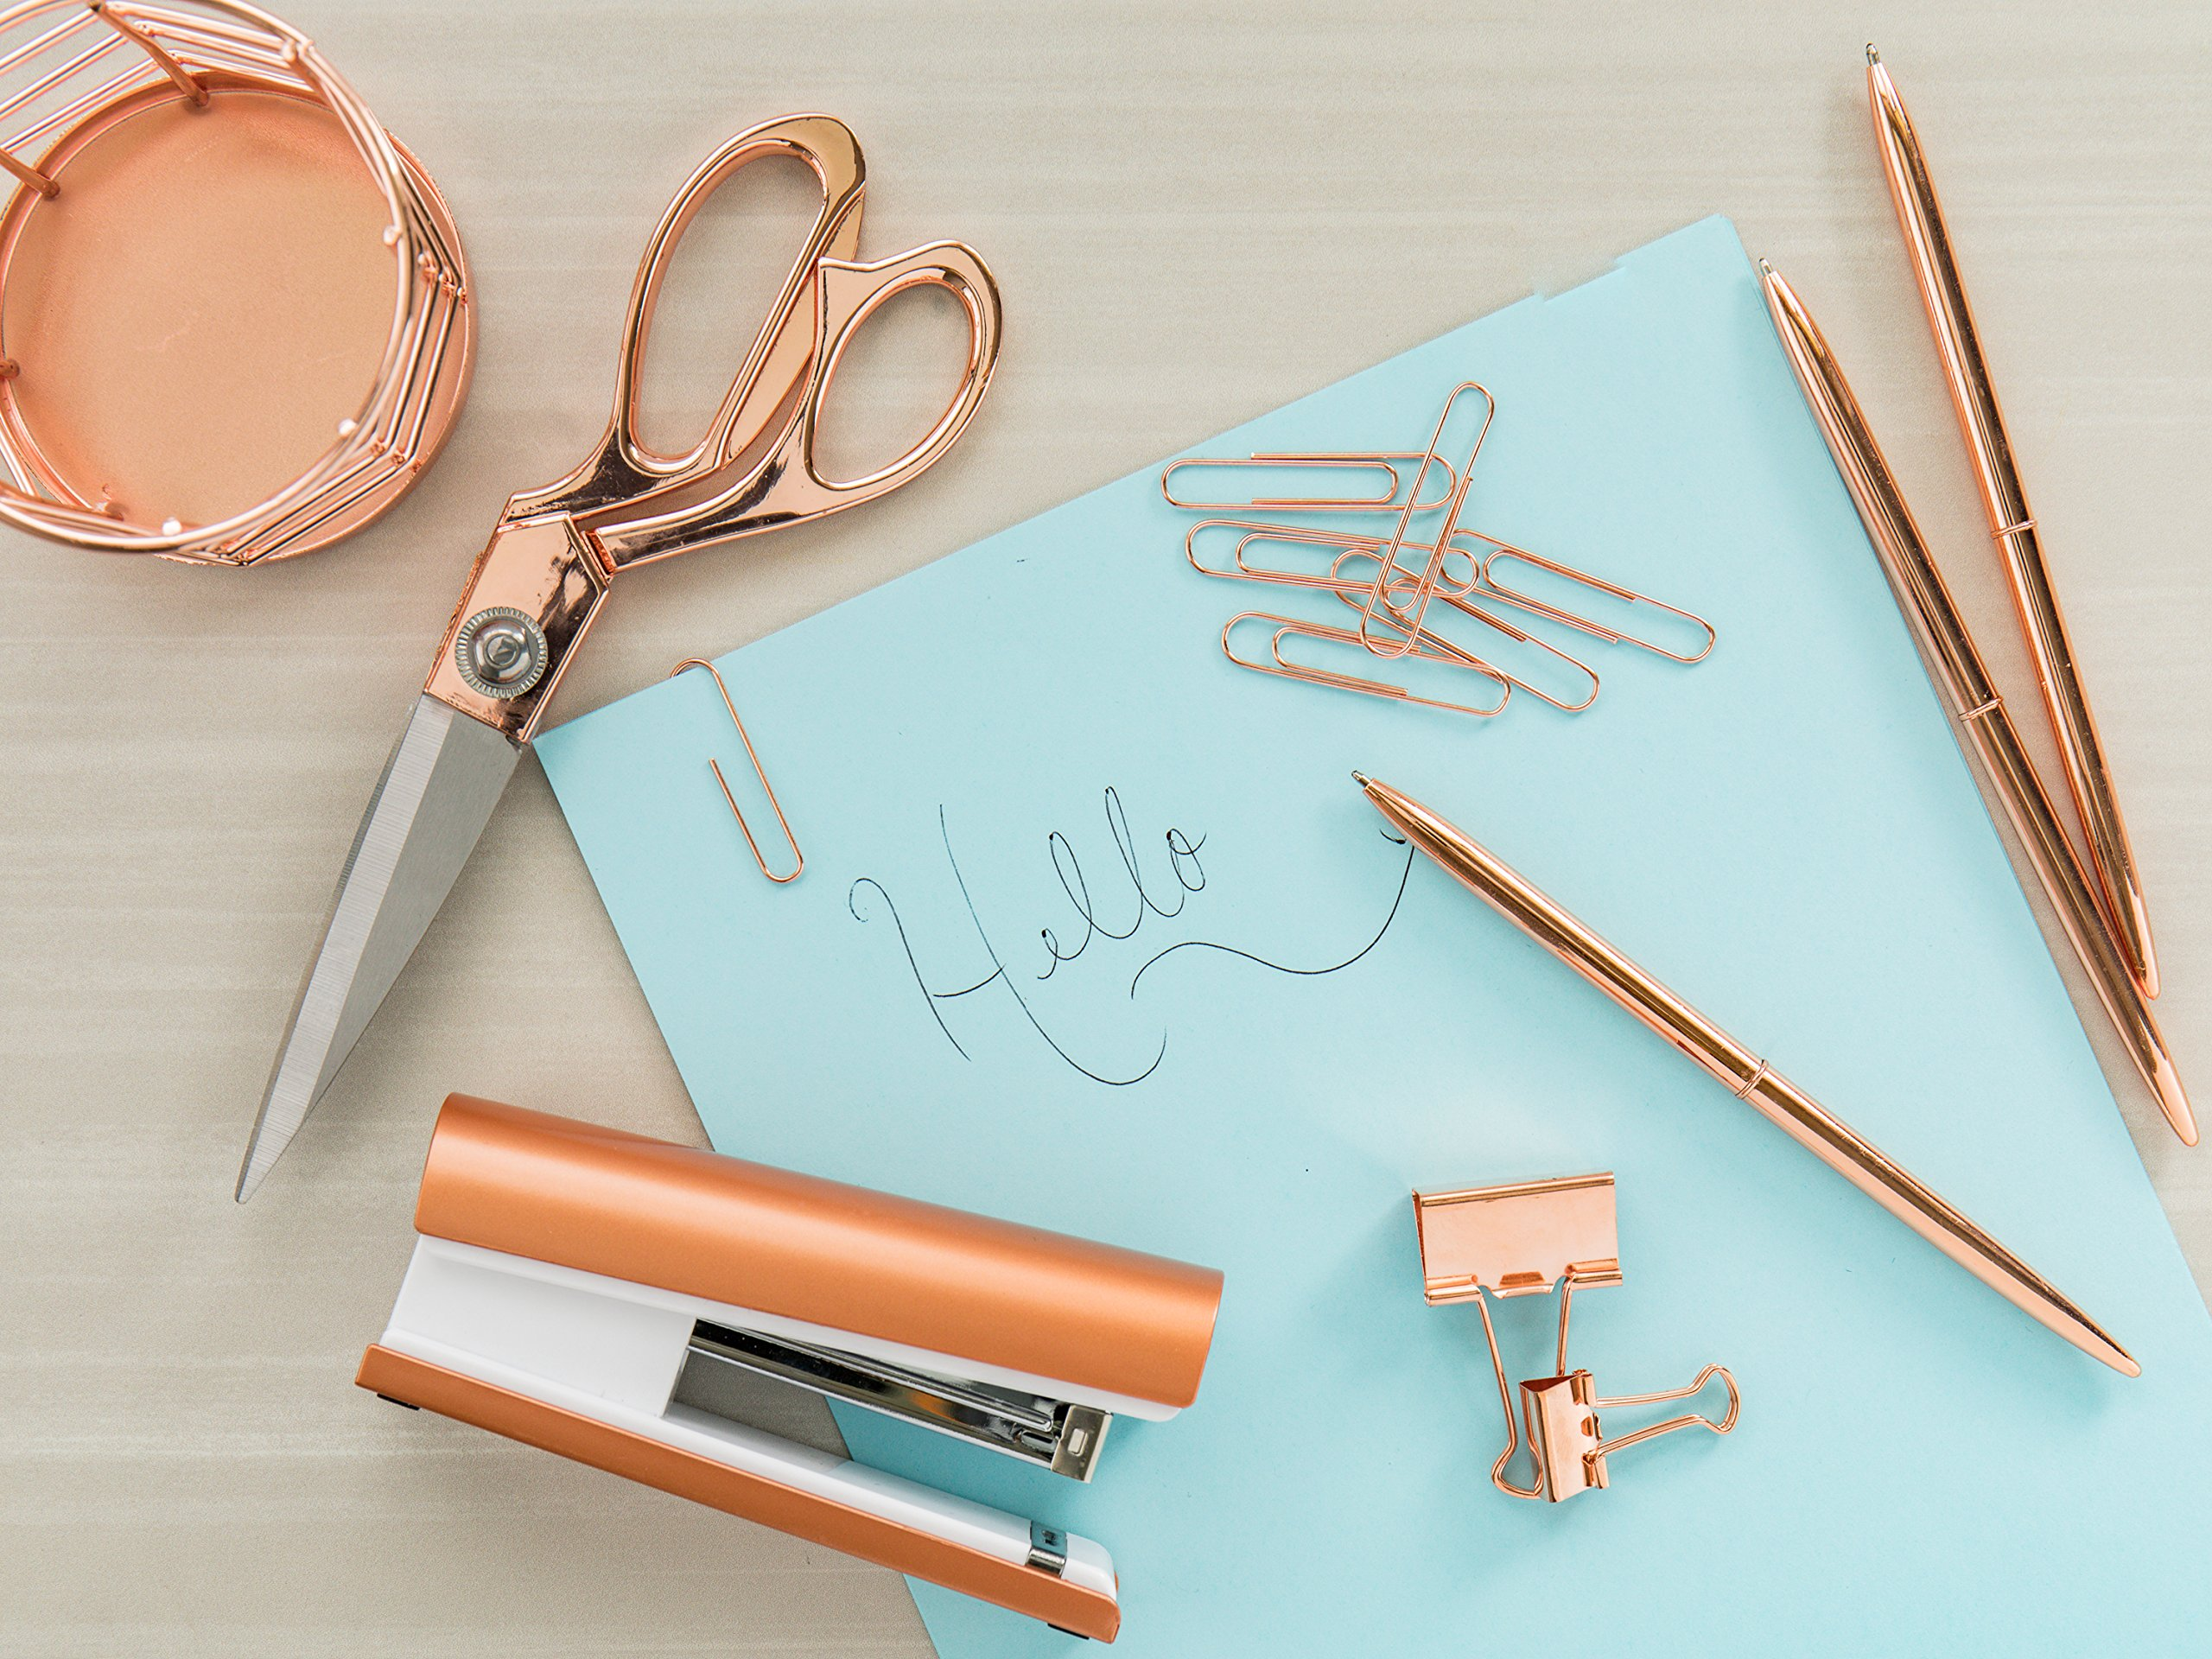 Rose Gold Desk Accessories | 7 Desktop Essentials (44 Items Total) | Office Supply Set & Organizer in Rose Gold Décor by Greenline Goods (Image #7)